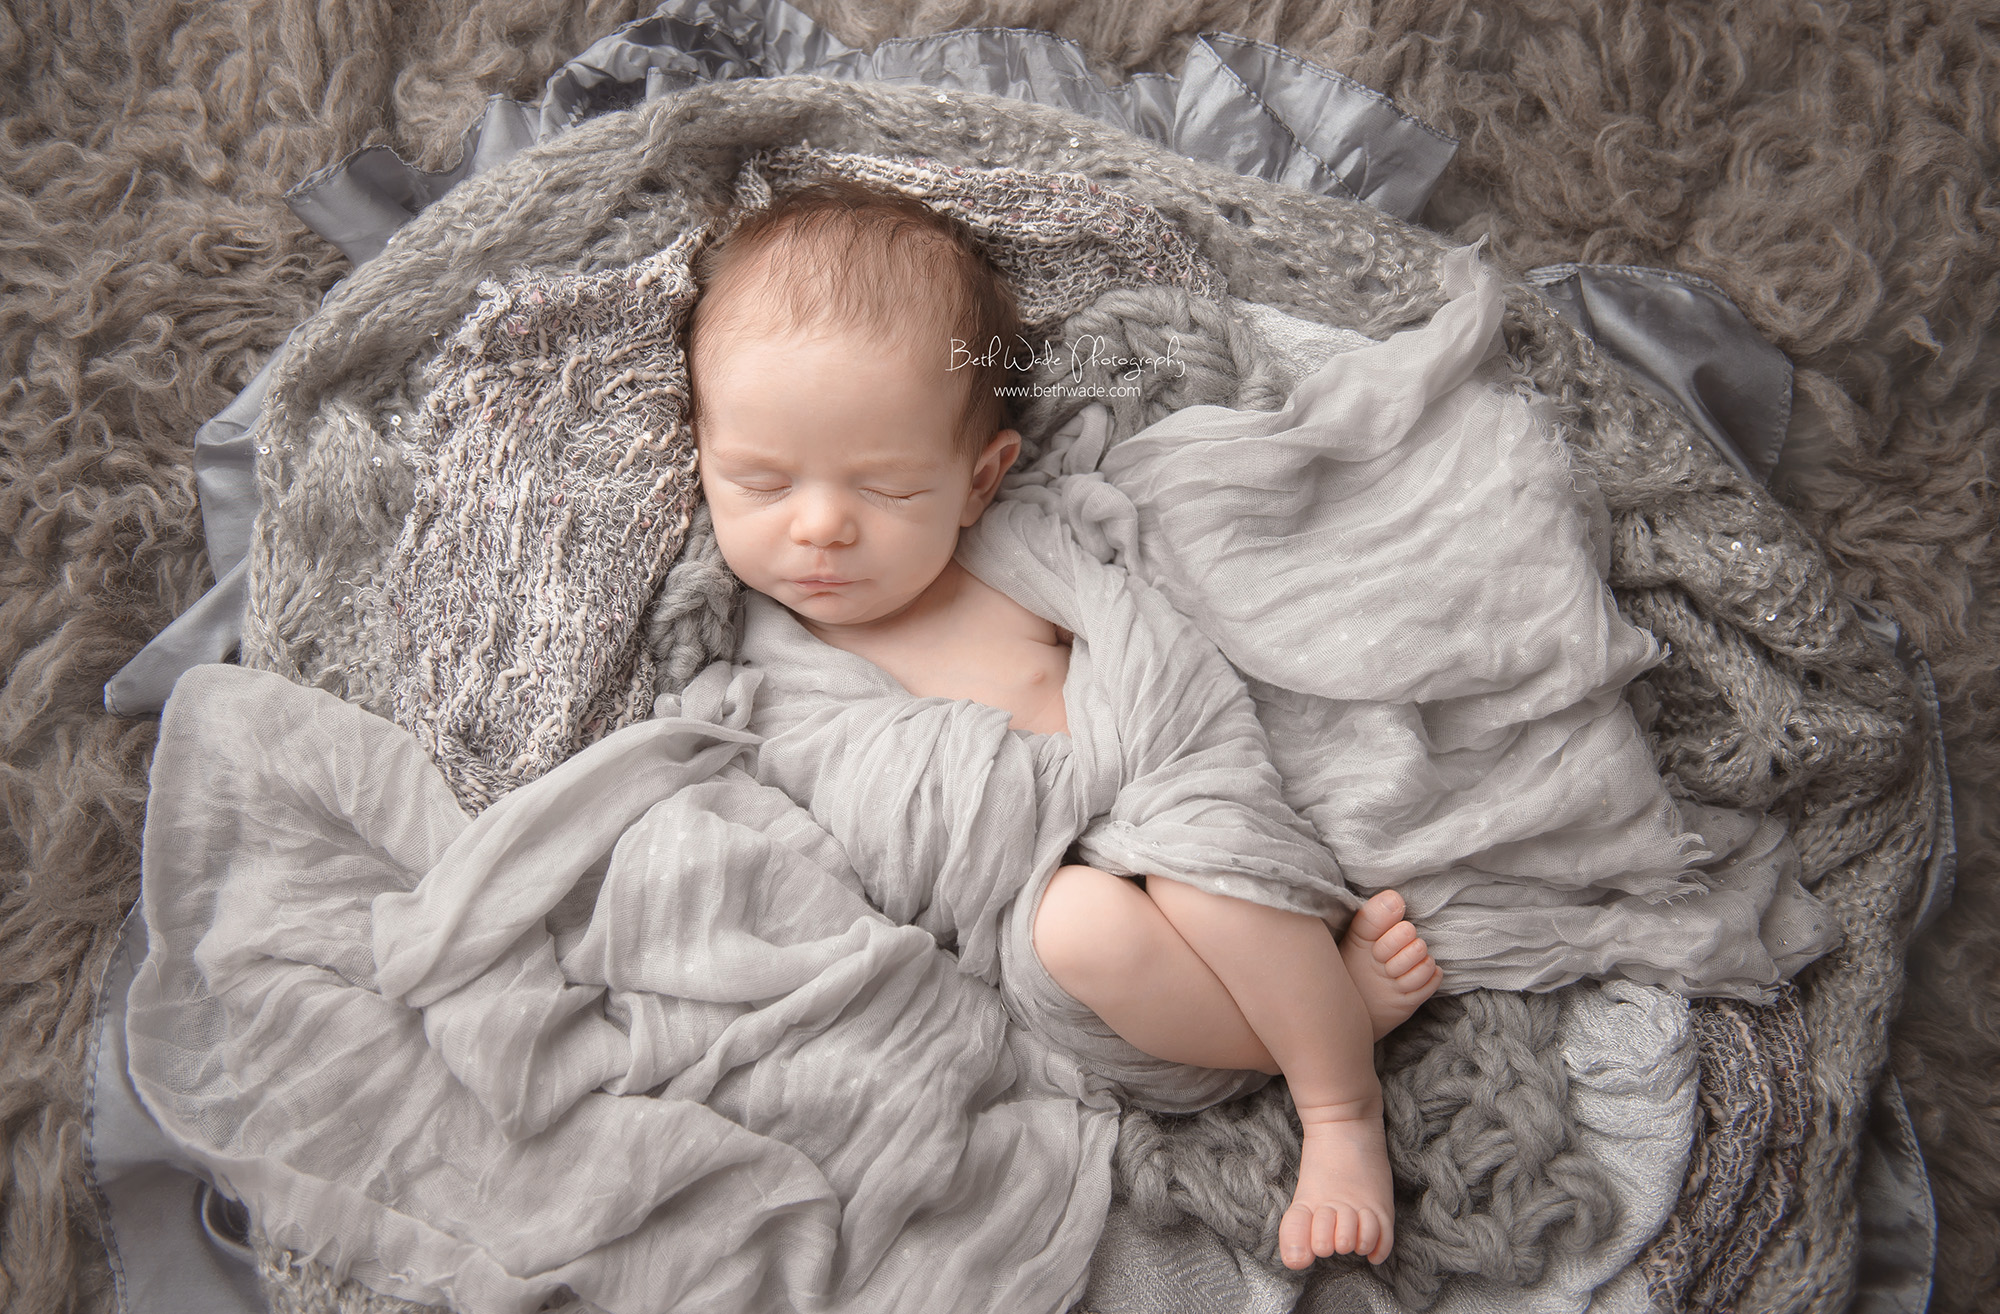 Precious 1 month old baby girl family of 3 newborn photographer charlotte nc